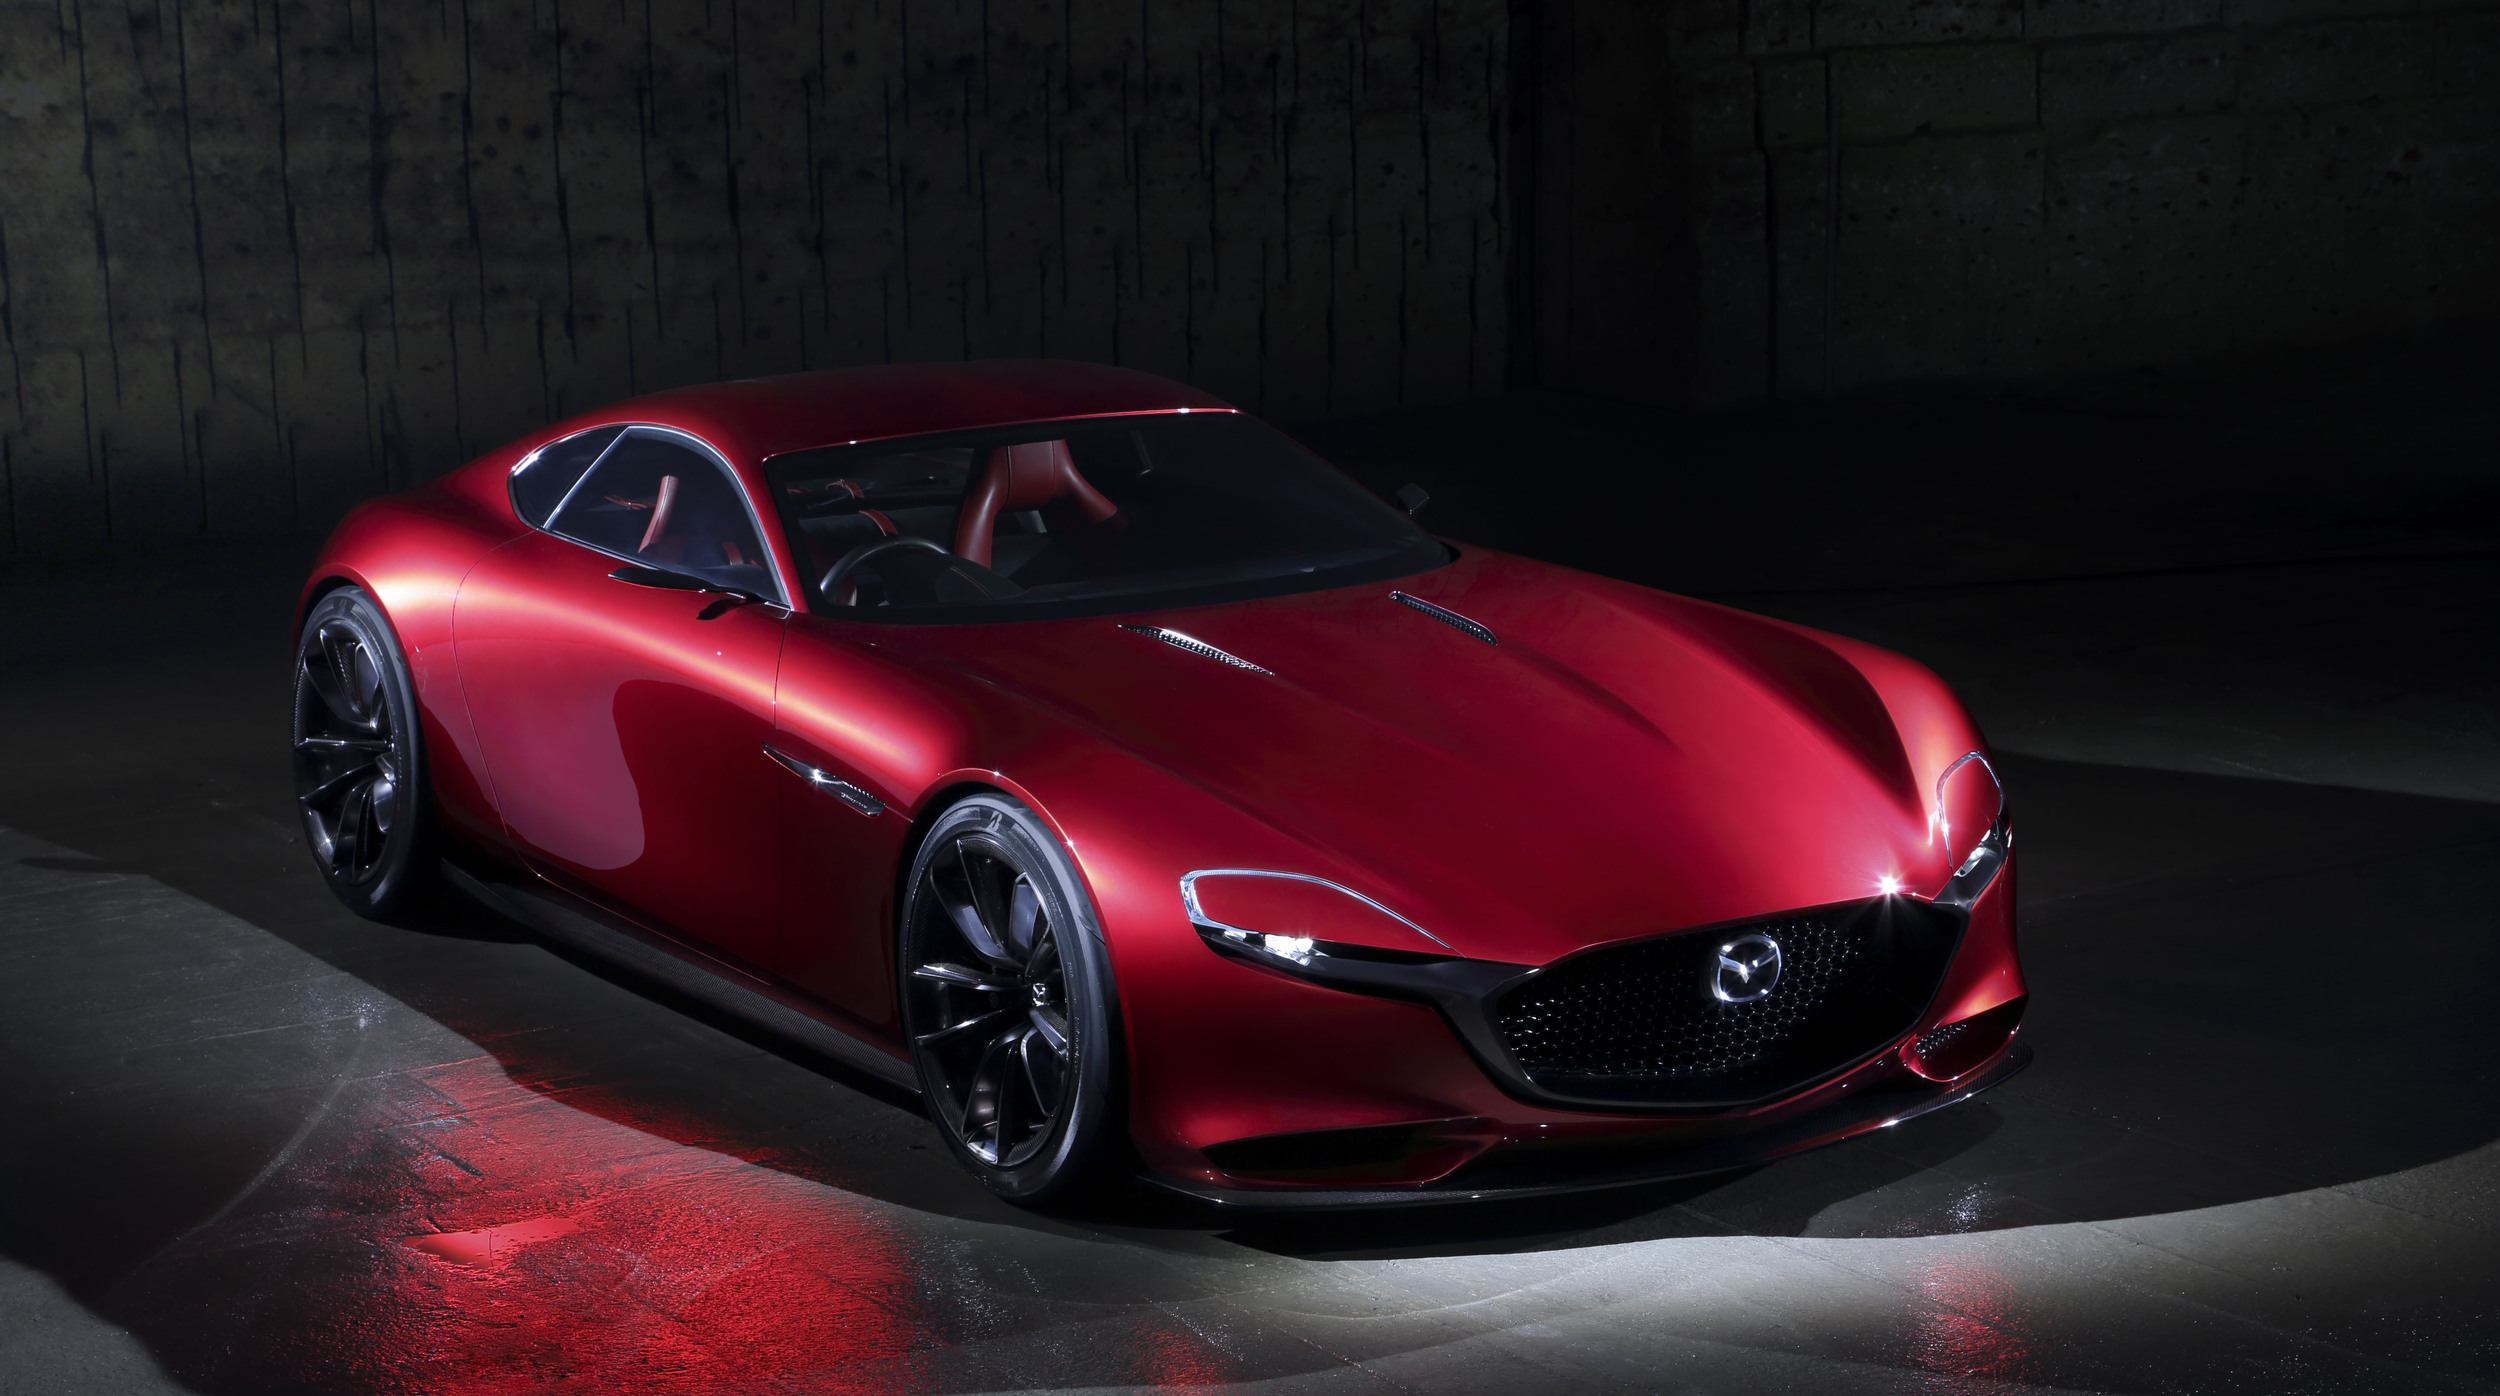 RX-Vision Concept By Mazda Brings The Rotary Back 4